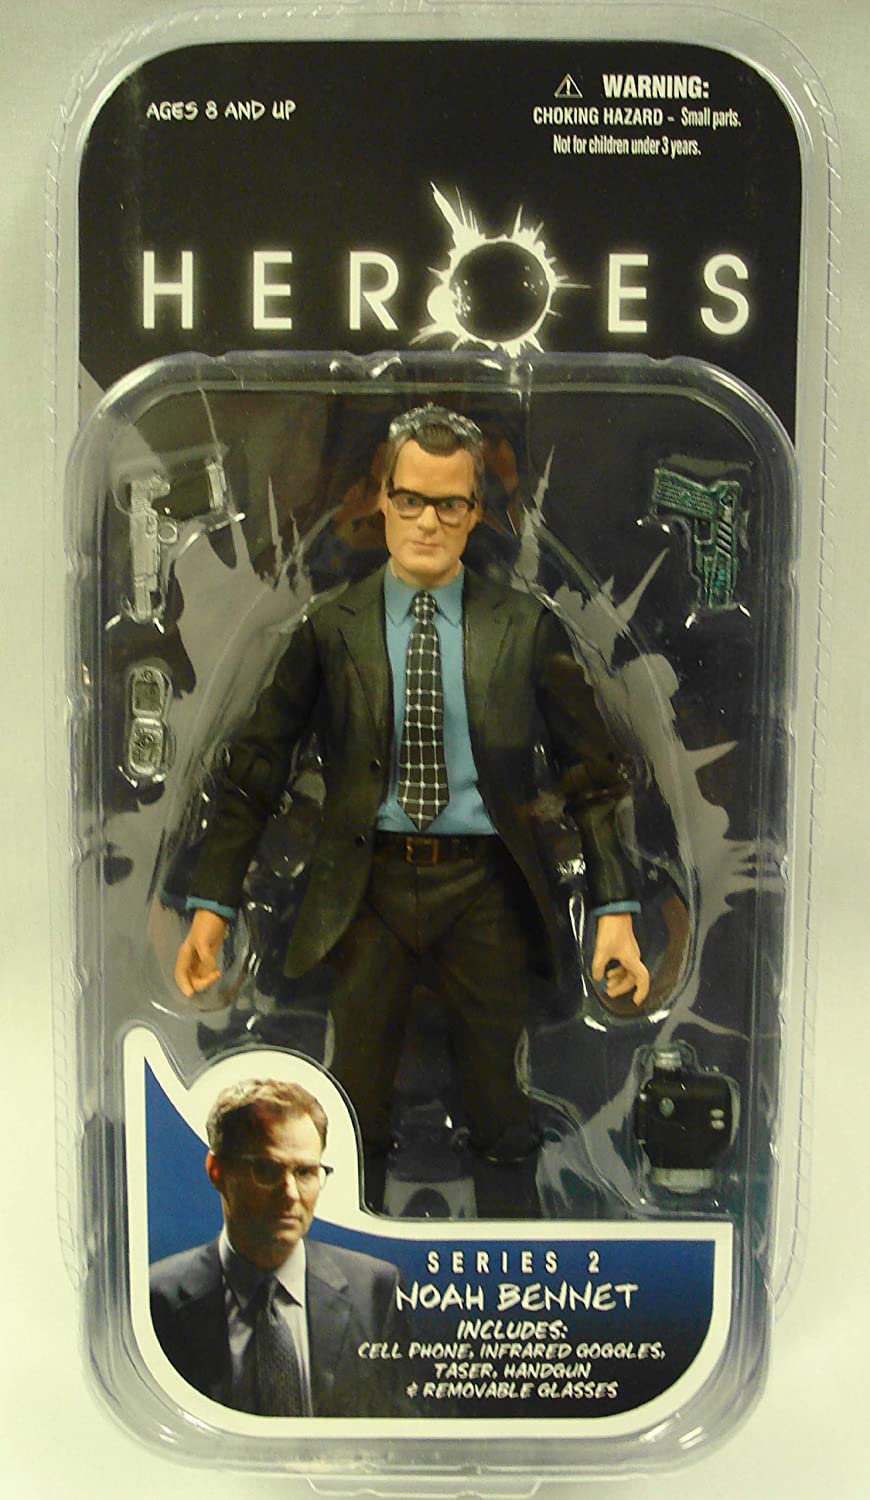 Heroes Series 2 Noah Bennet Action Figure